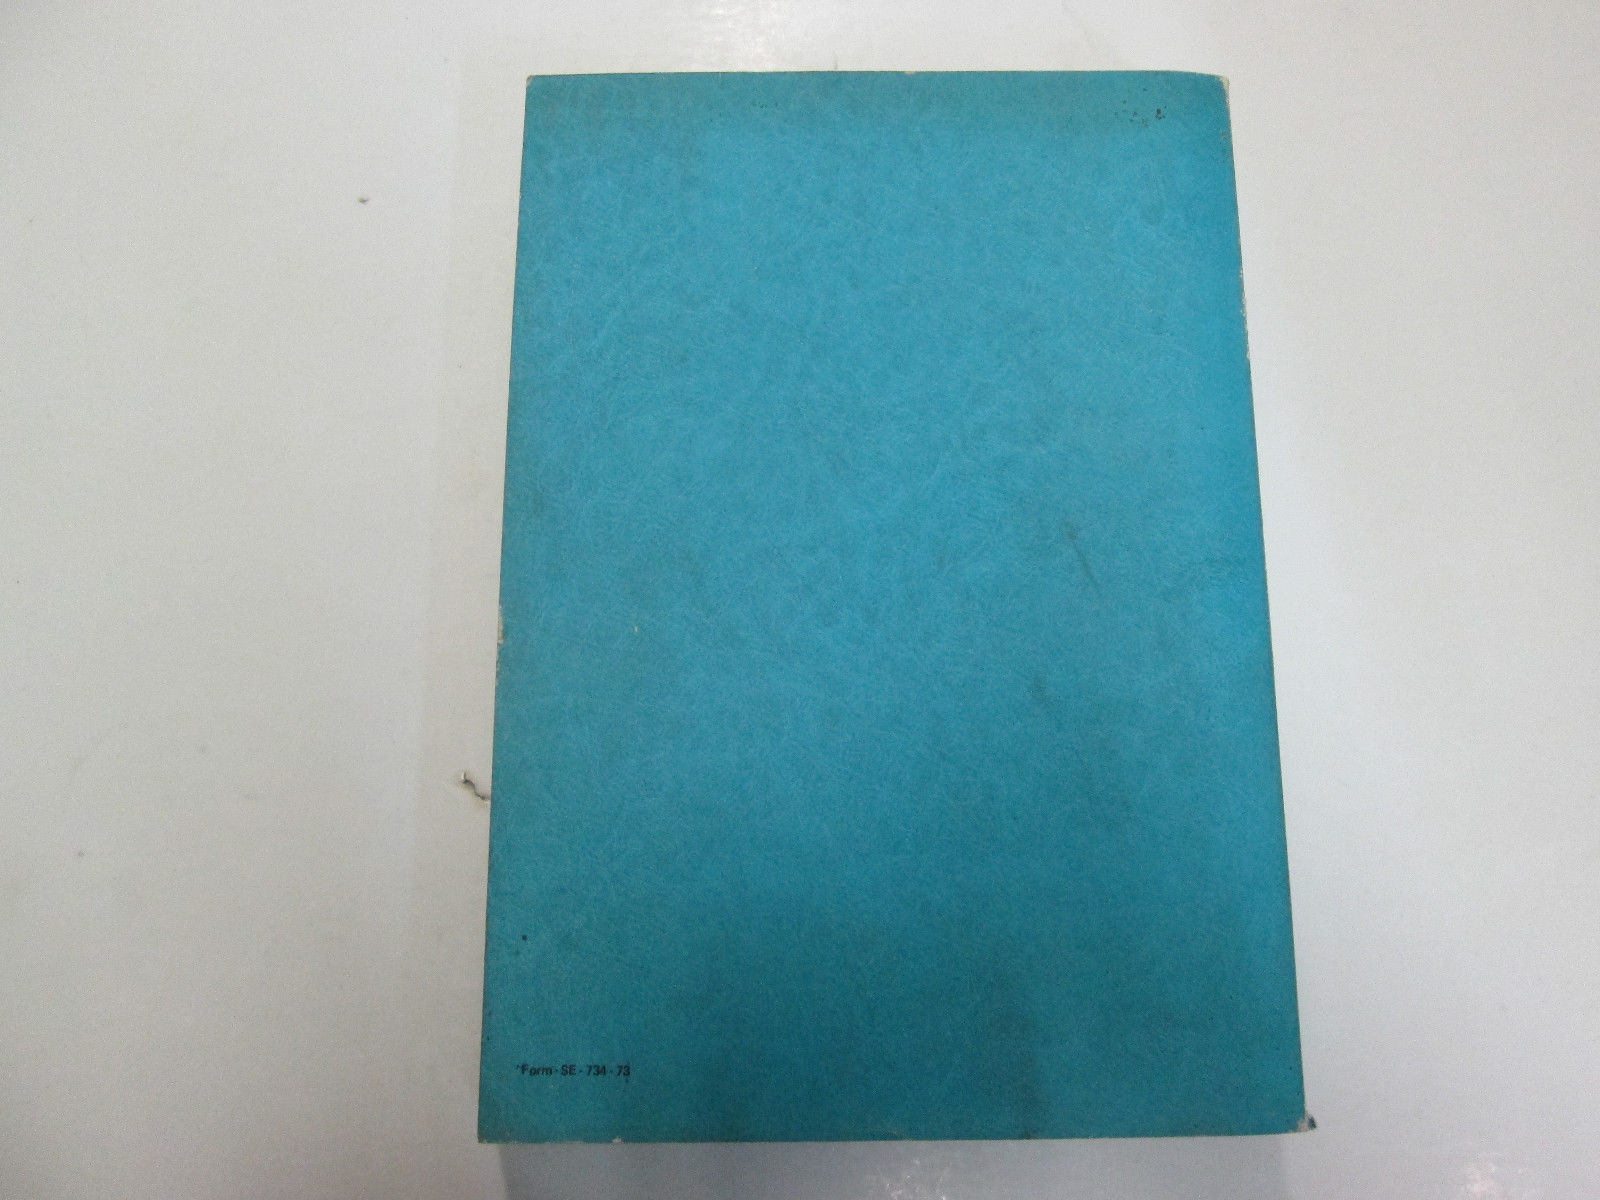 1972 1973 FORD CORTINA Service Repair Manual FACTORY USED STAINS WRITING OEM